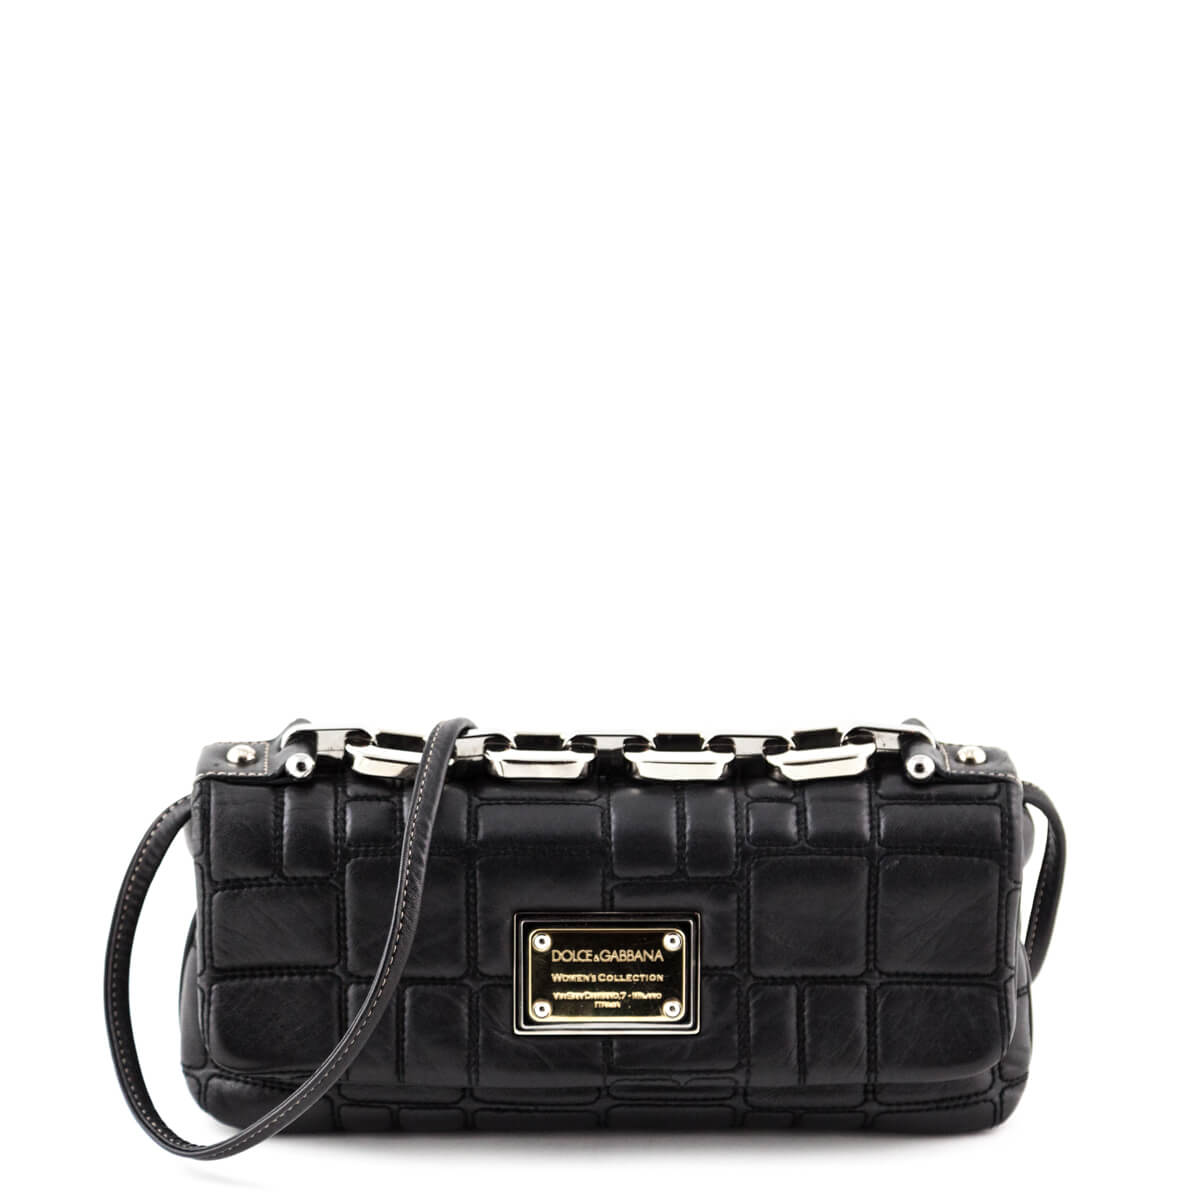 5665ee8225 Dolce   Gabbana Black Miss Deco Shoulder Bag - LOVE that BAG - Preowned  Authentic Designer ...